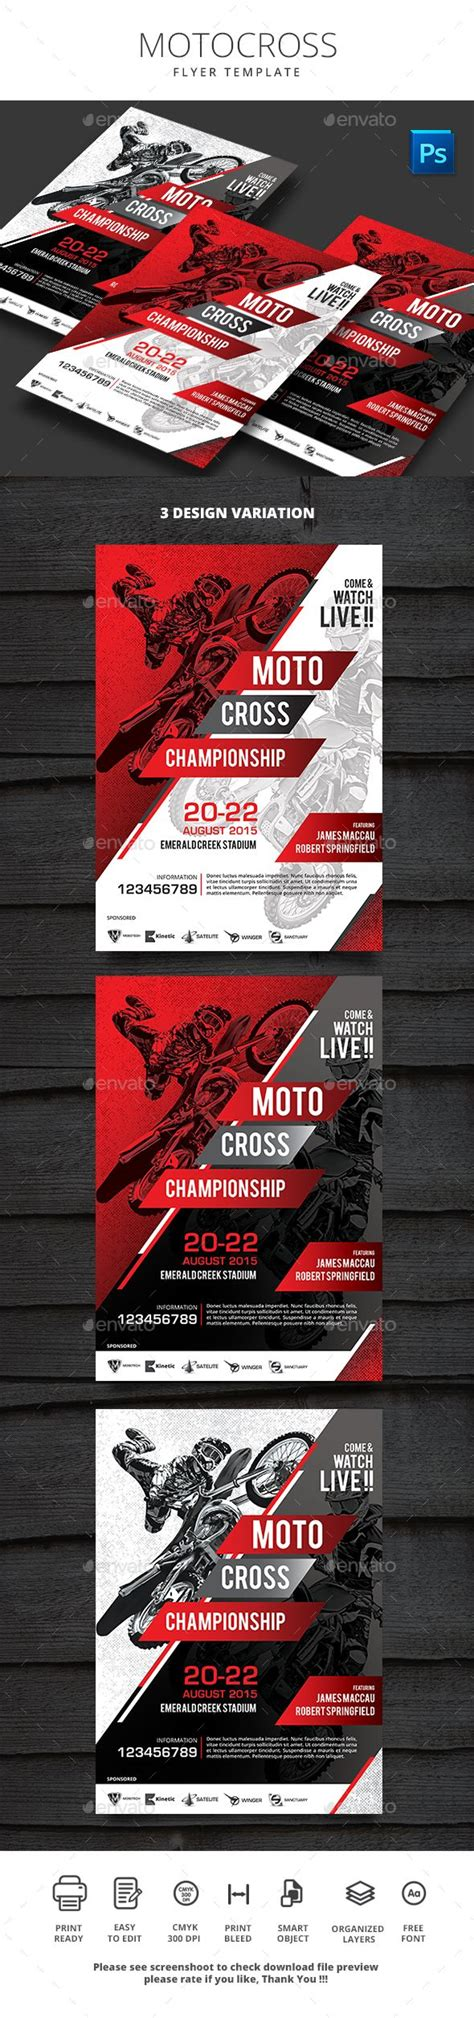 Best 25 Event Flyers Ideas On Pinterest Flyer And Poster Design The Flyer And Graphic Design Sports Graphic Design Templates